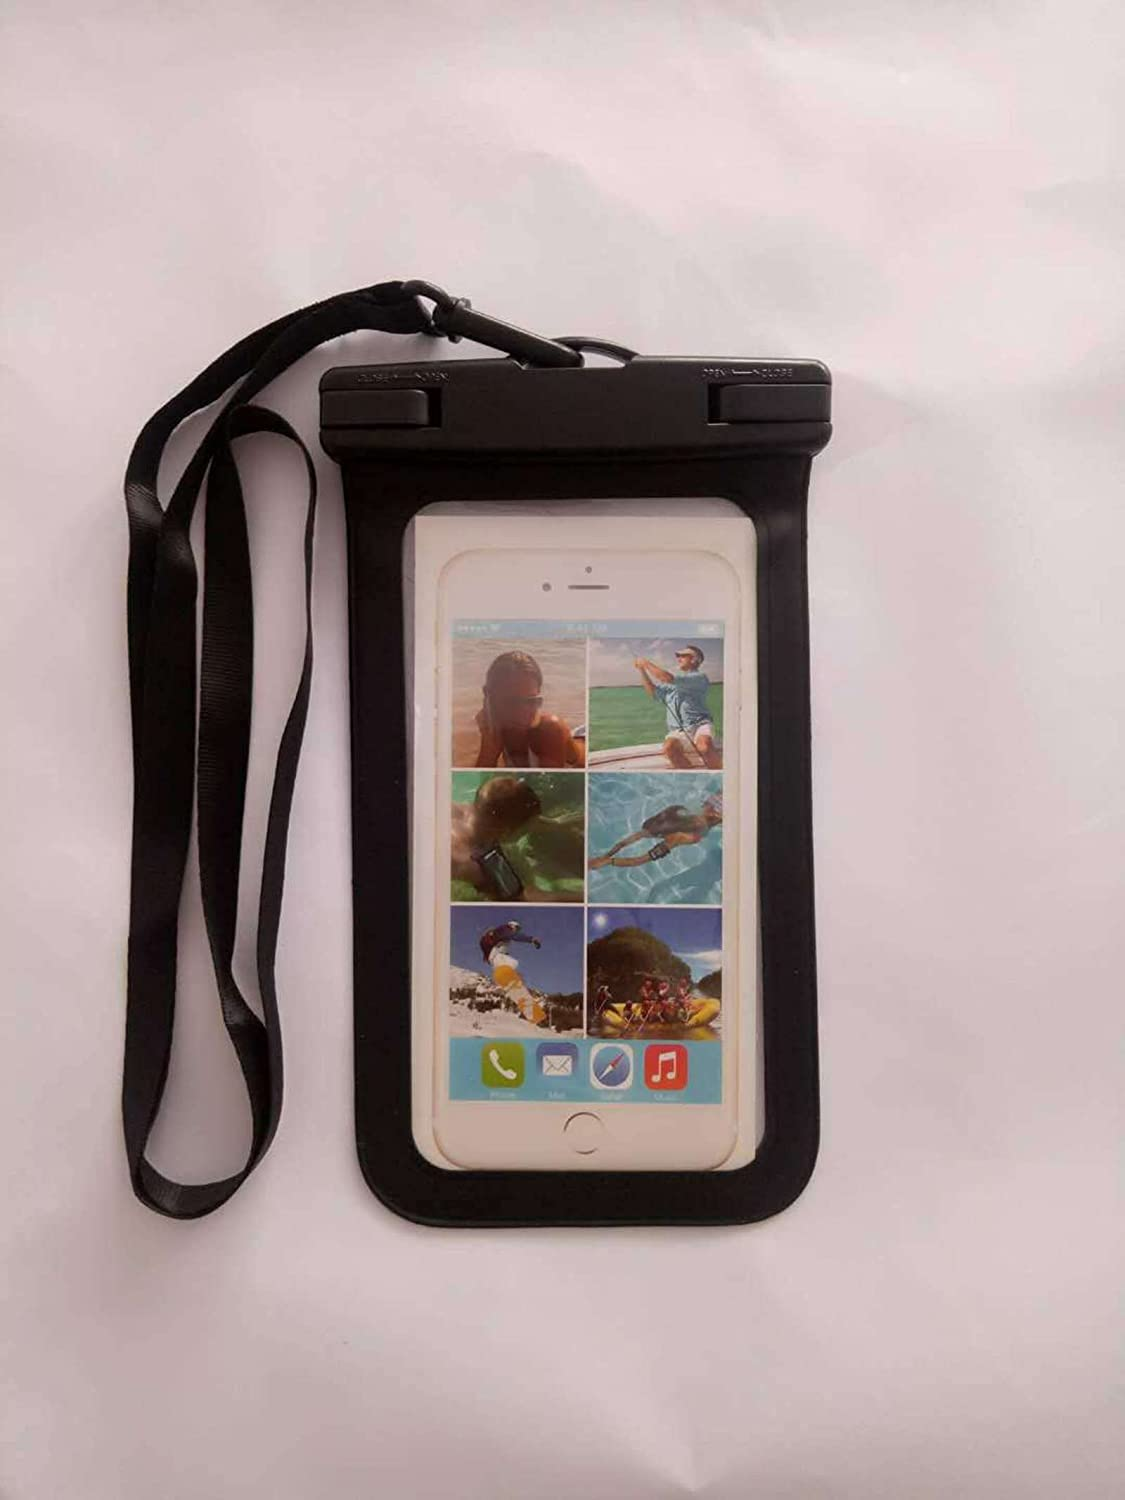 NC Universal Waterproof Case,Waterproof Phone Pouch Compatible for iPhone 12 Pro 11 Pro Max XS Max XR X 8 7 Samsung Galaxy S10/s9 Google Pixel 2 HTC Up to 7.0